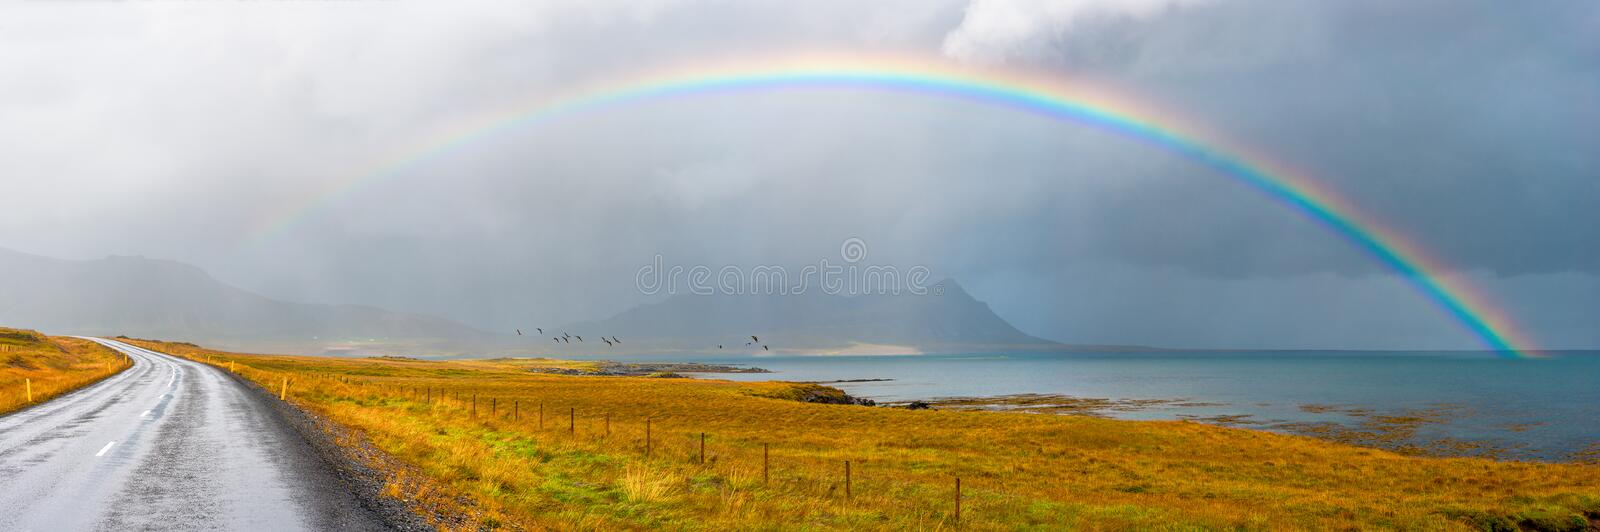 Under the rainbow. Synchronicity. The blissful feeling of being at the right place at the right time. Just another magical moment on utterly beautiful Iceland stock photos